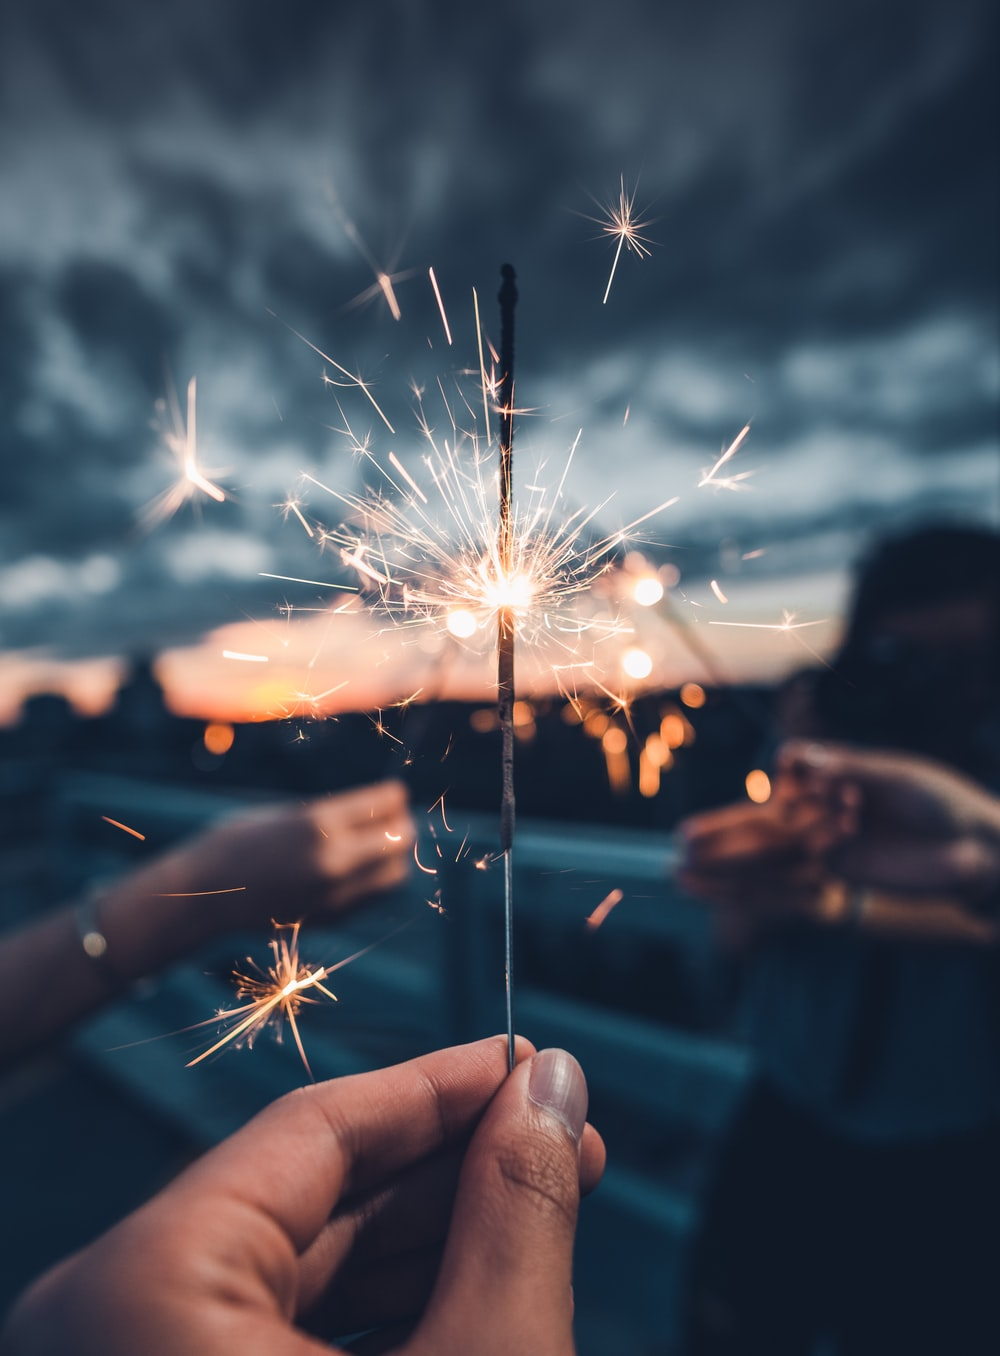 photo of person holding lighted sparkler photo - Free ...